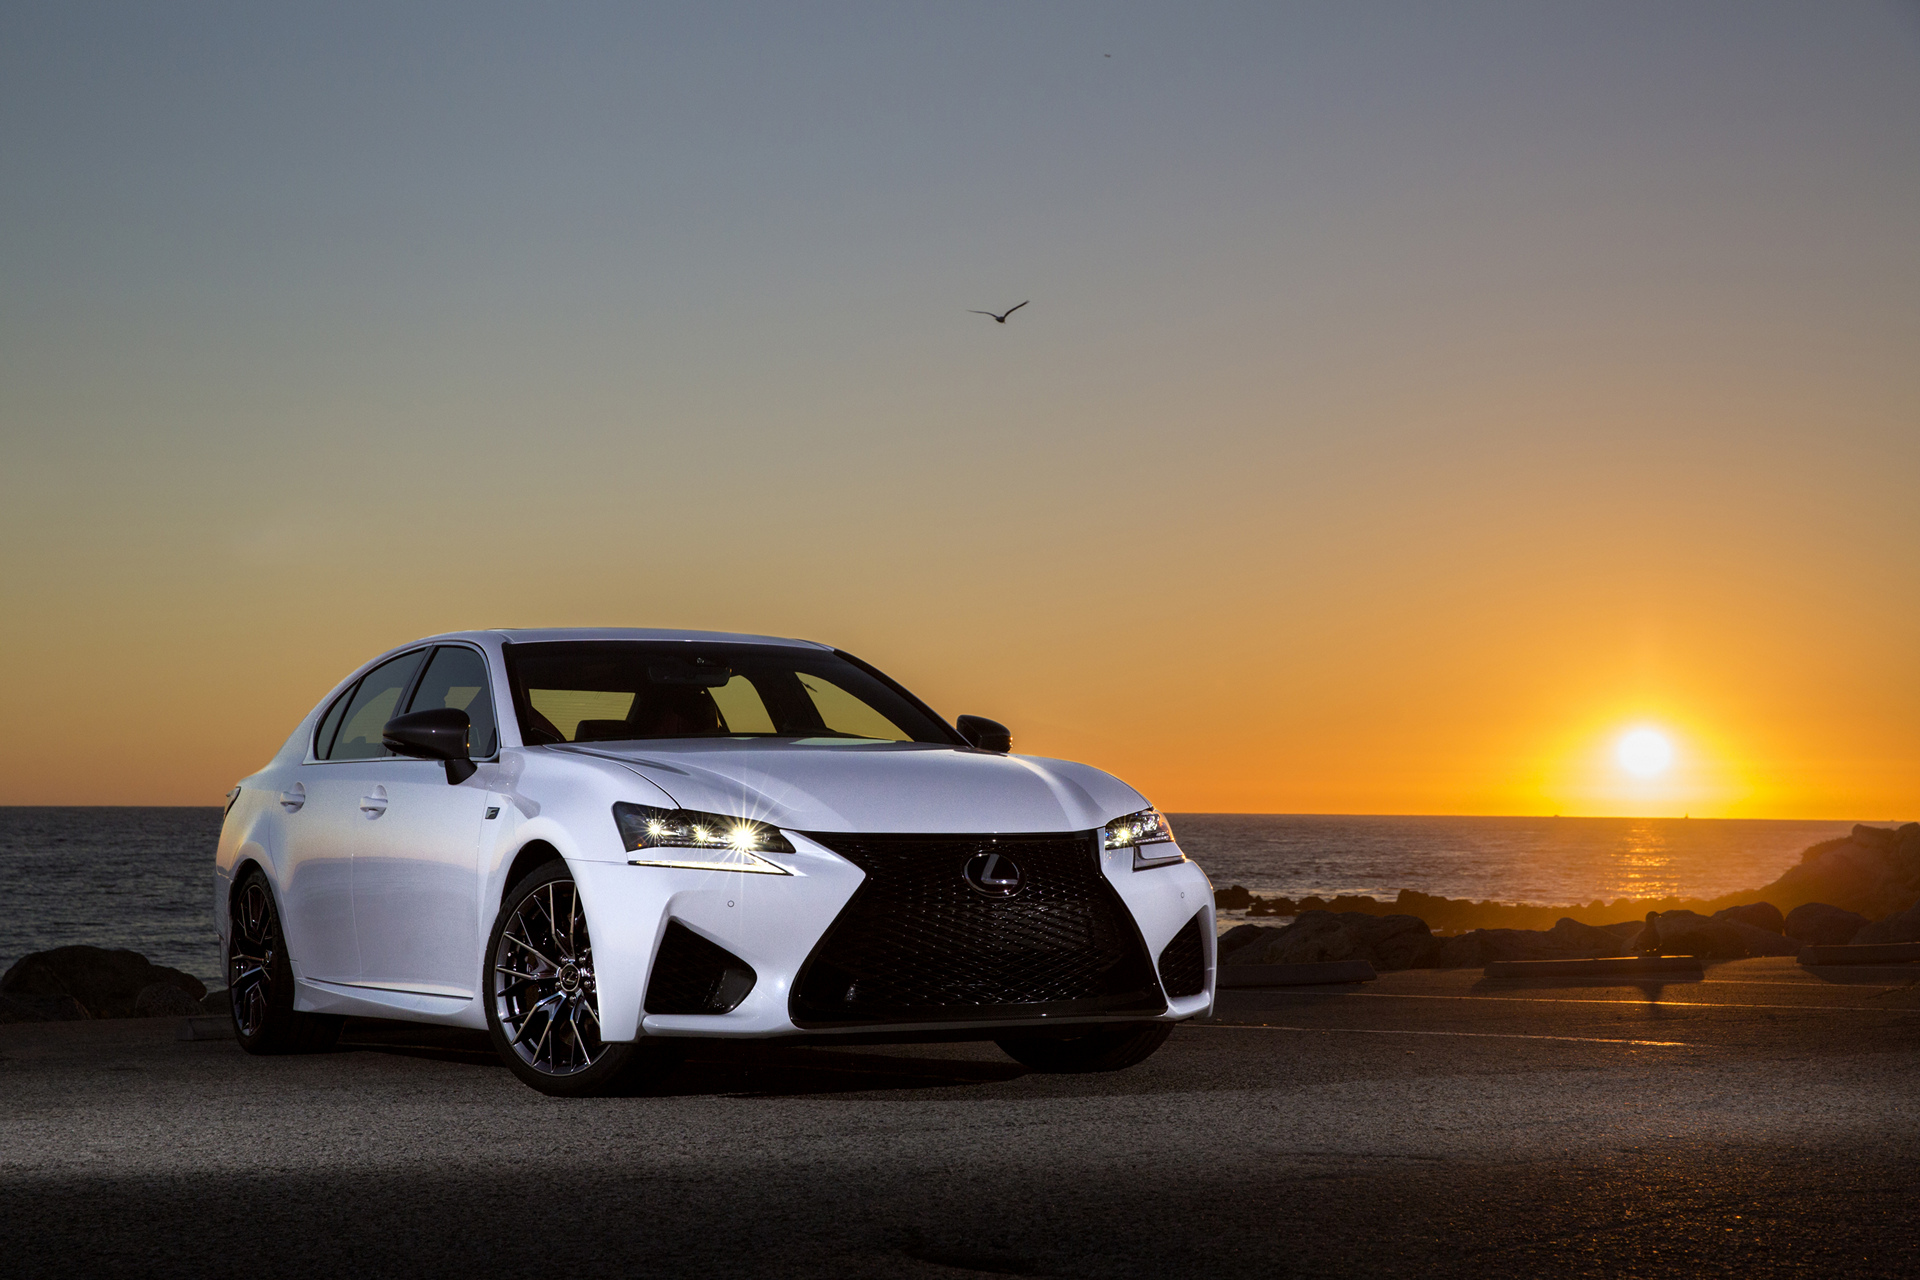 2016 Lexus GS F © Toyota Motor Corporation